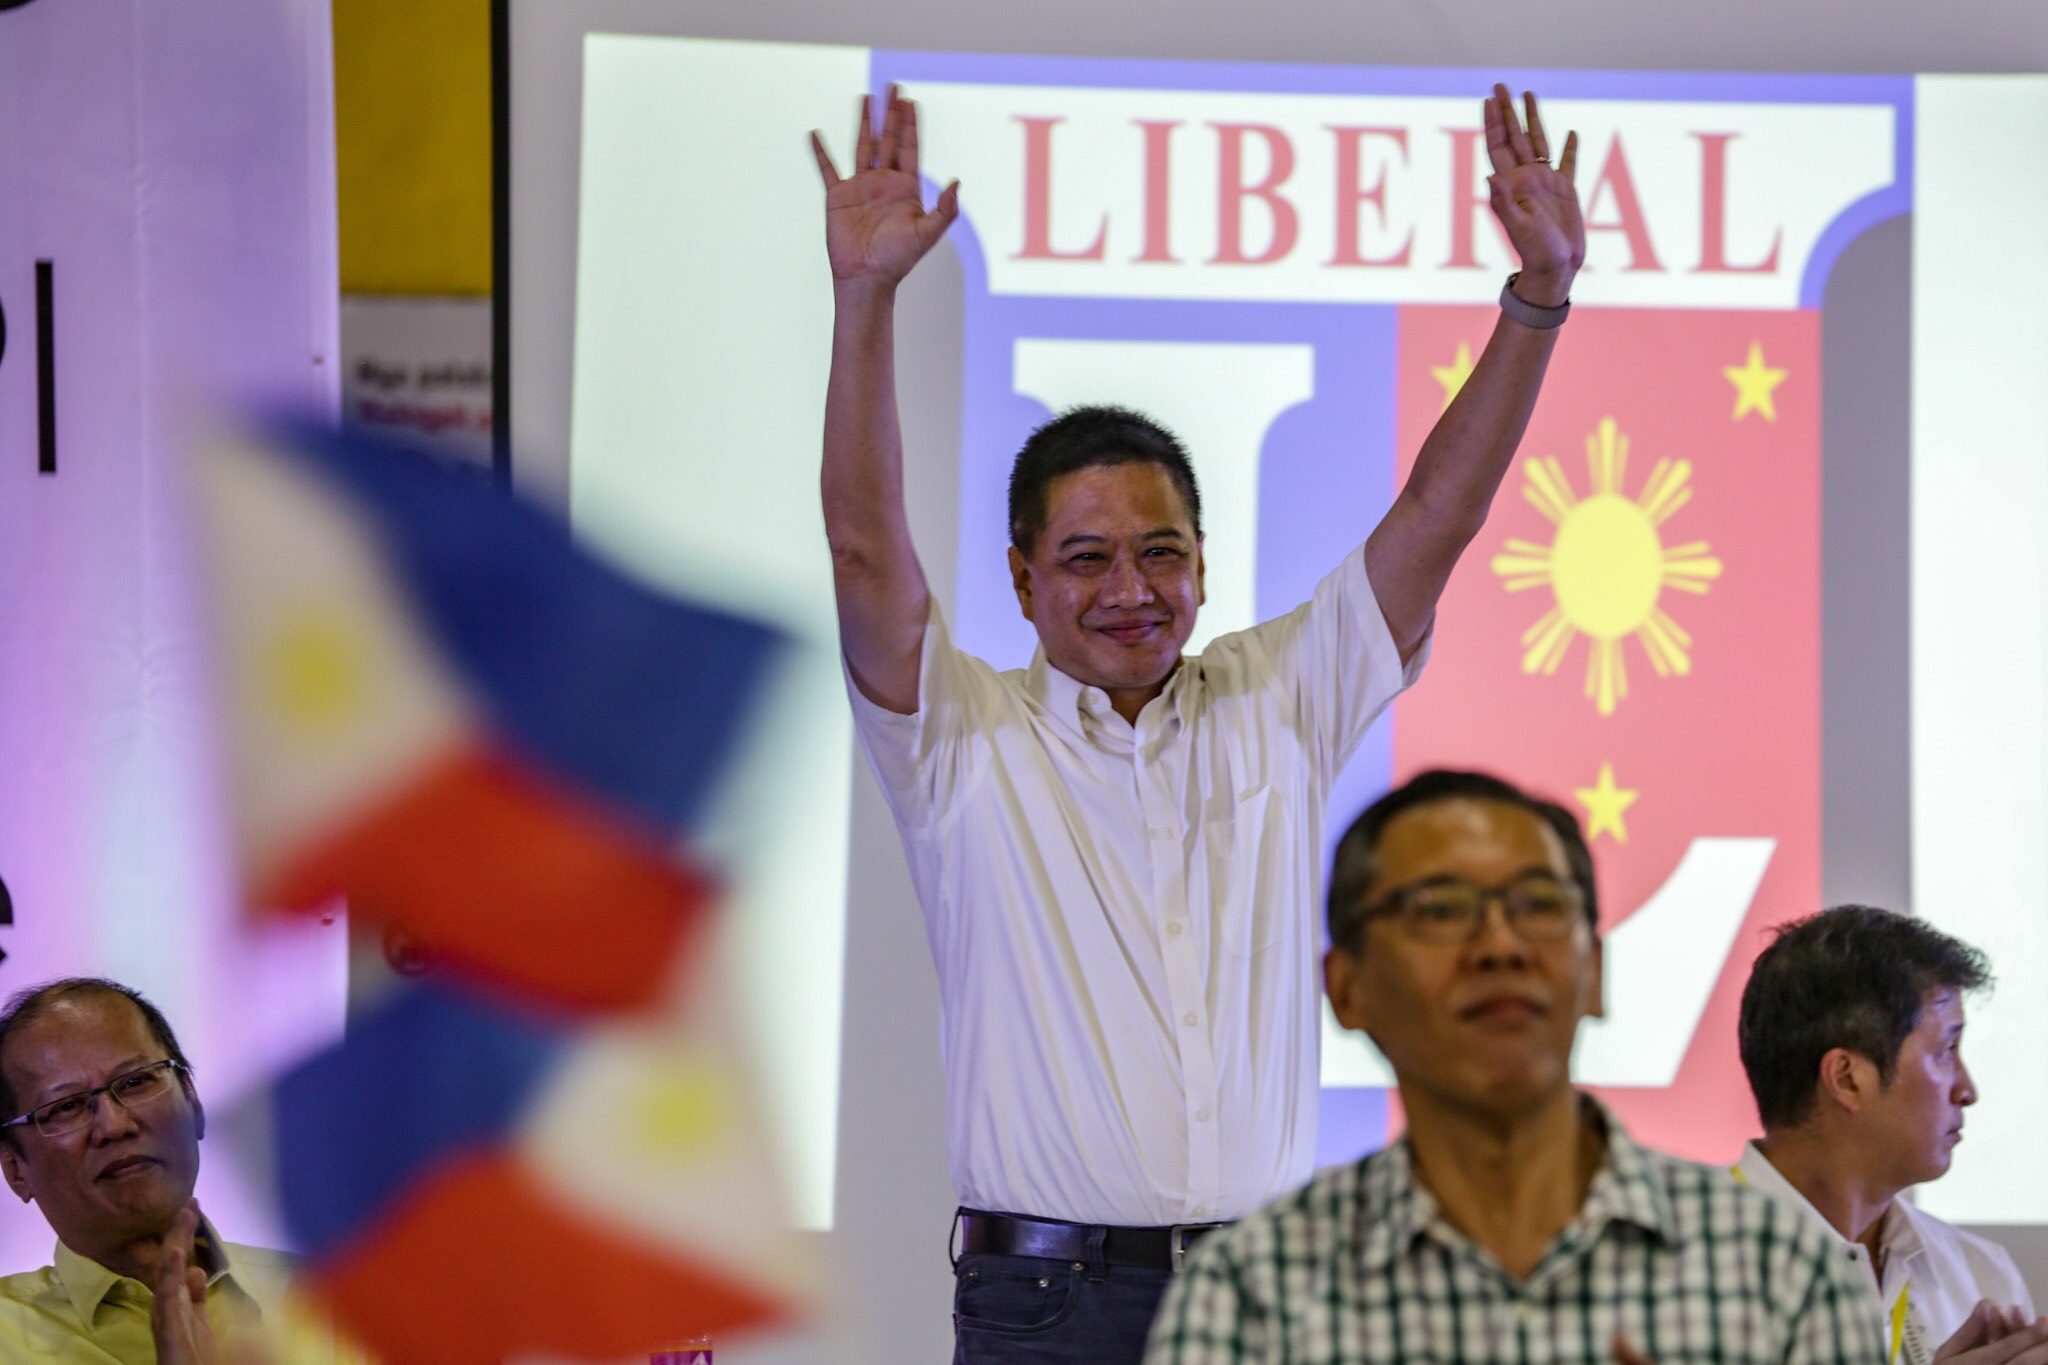 GUNNING FOR HIGHER OFFICE. Ex-lawmaker Erin Tau00f1ada waves to his supporters. Photo by Maria Tan/Rappler